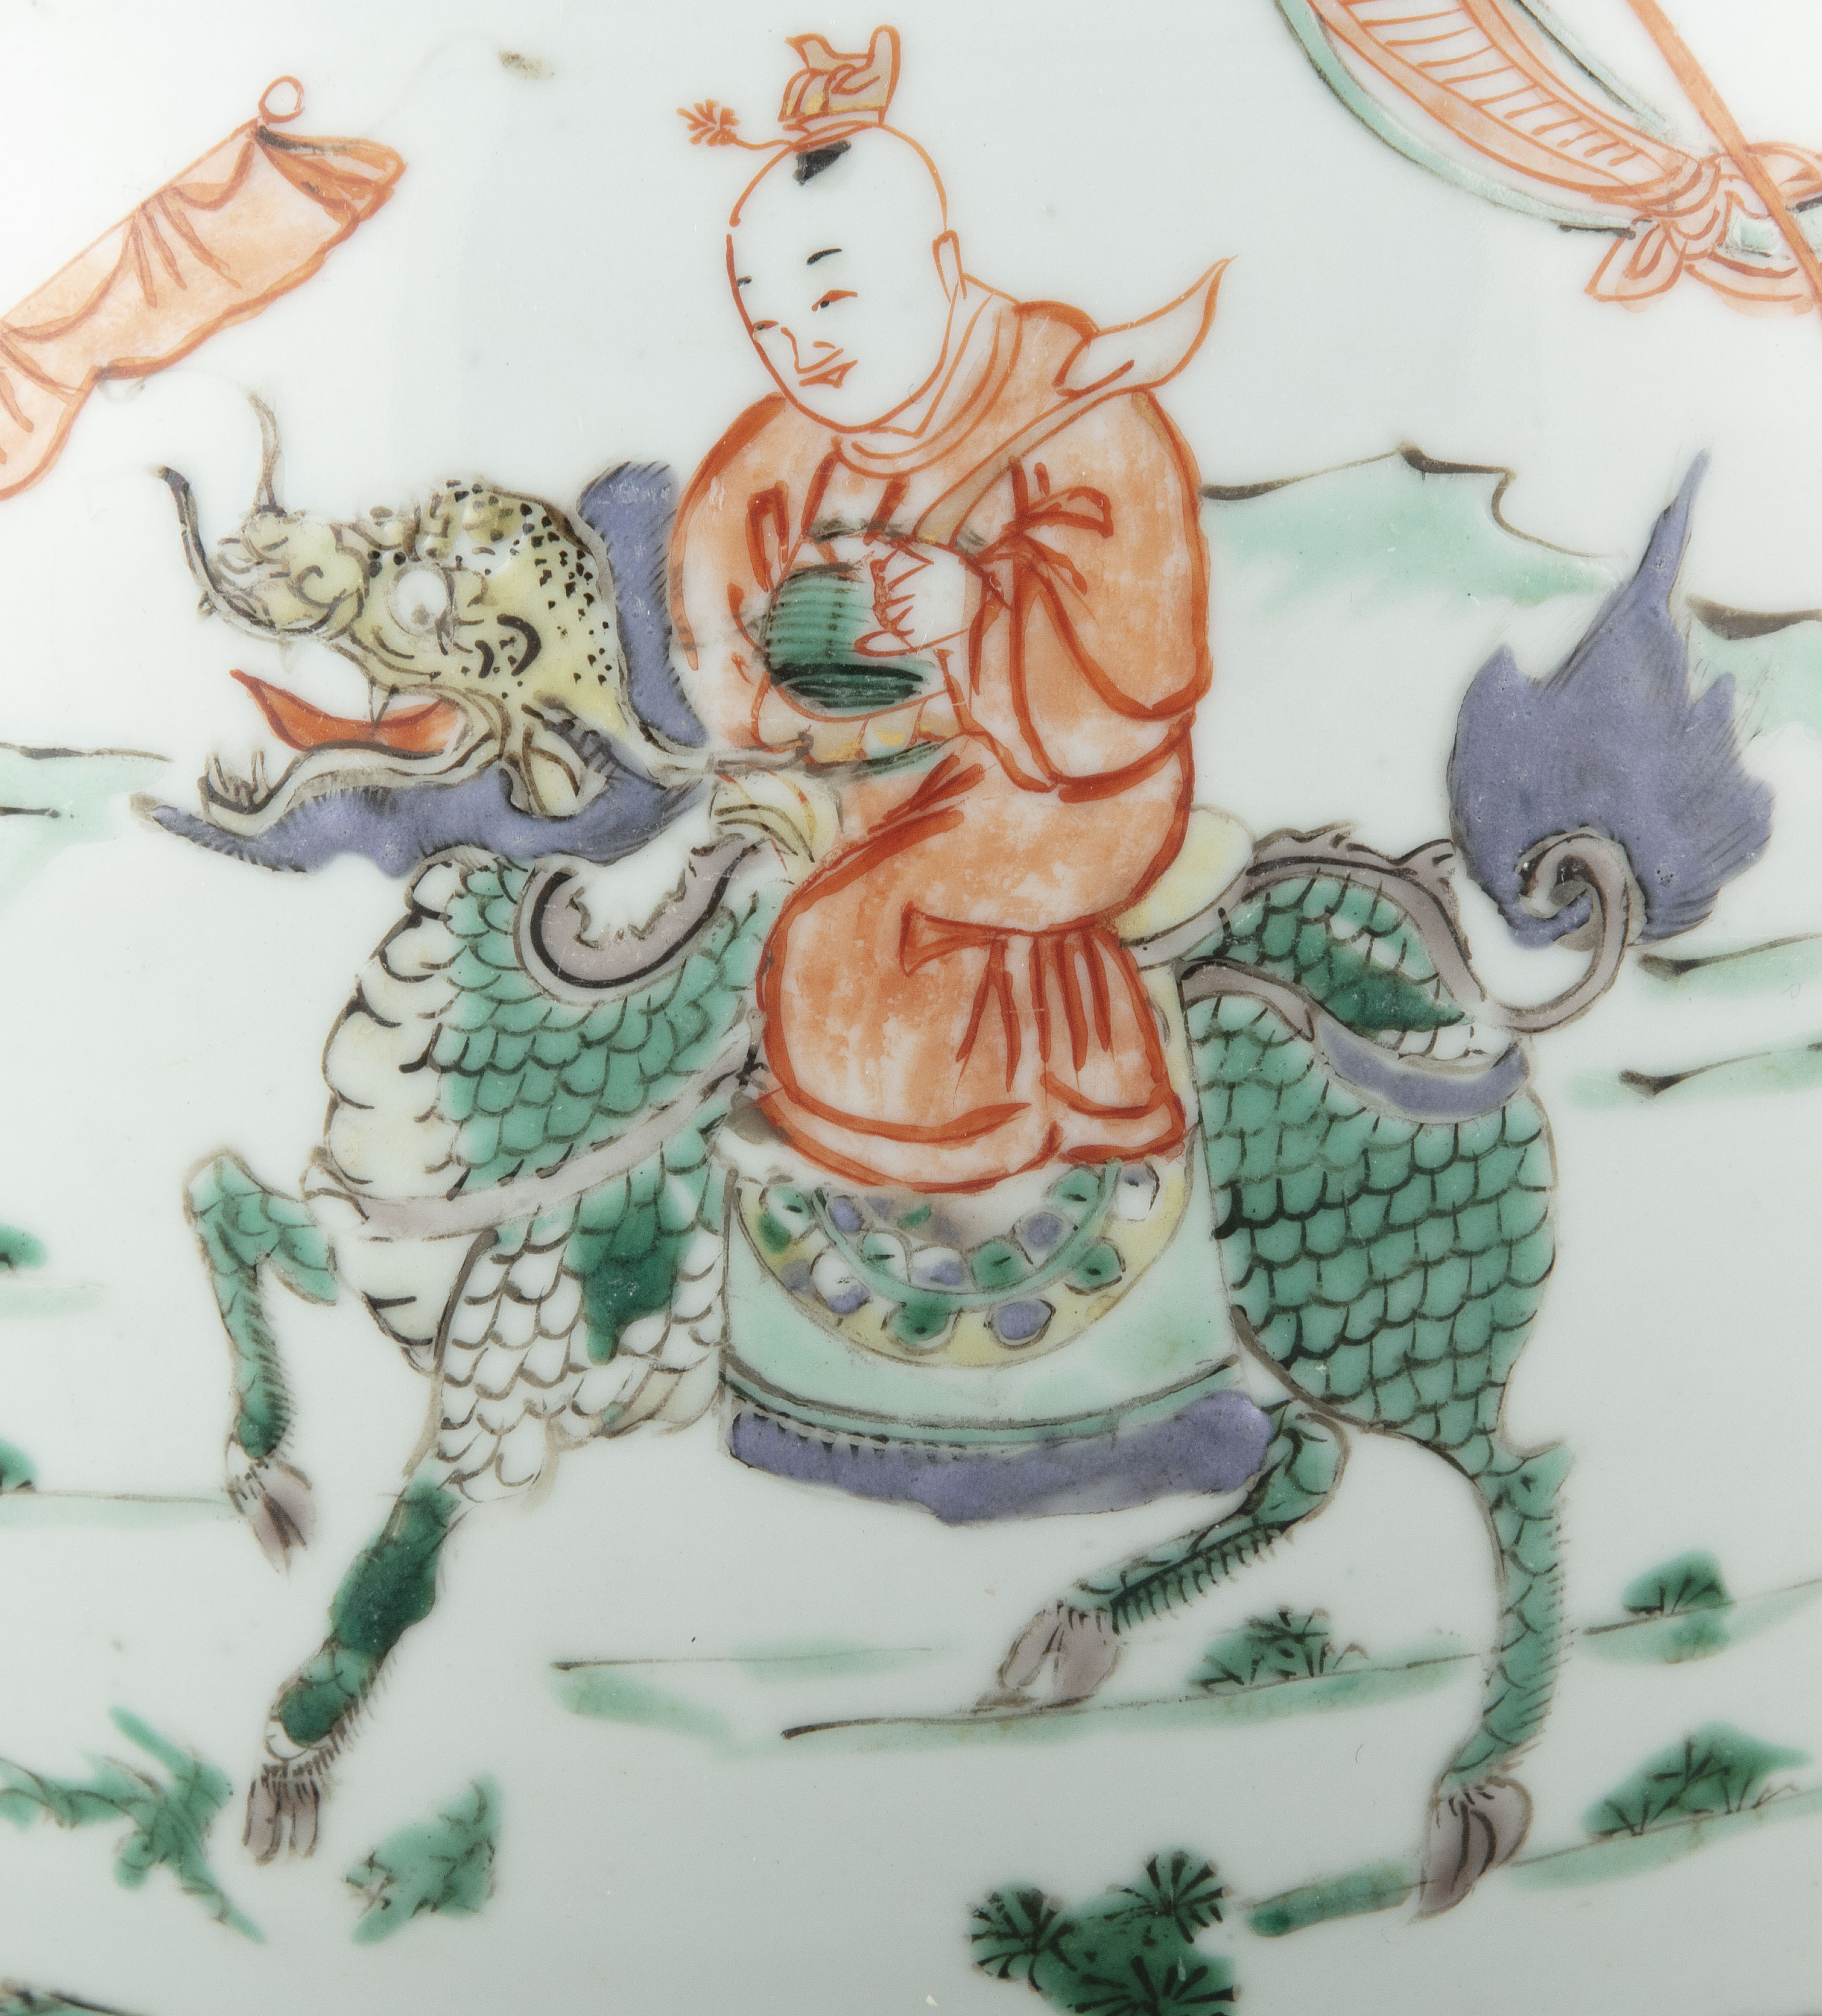 A FAMILLE VERTE 'BOY AND QILIN' PORCELAIN GINGER JAR China, Qing Dynasty, Kangxi period Adorned in - Image 5 of 20